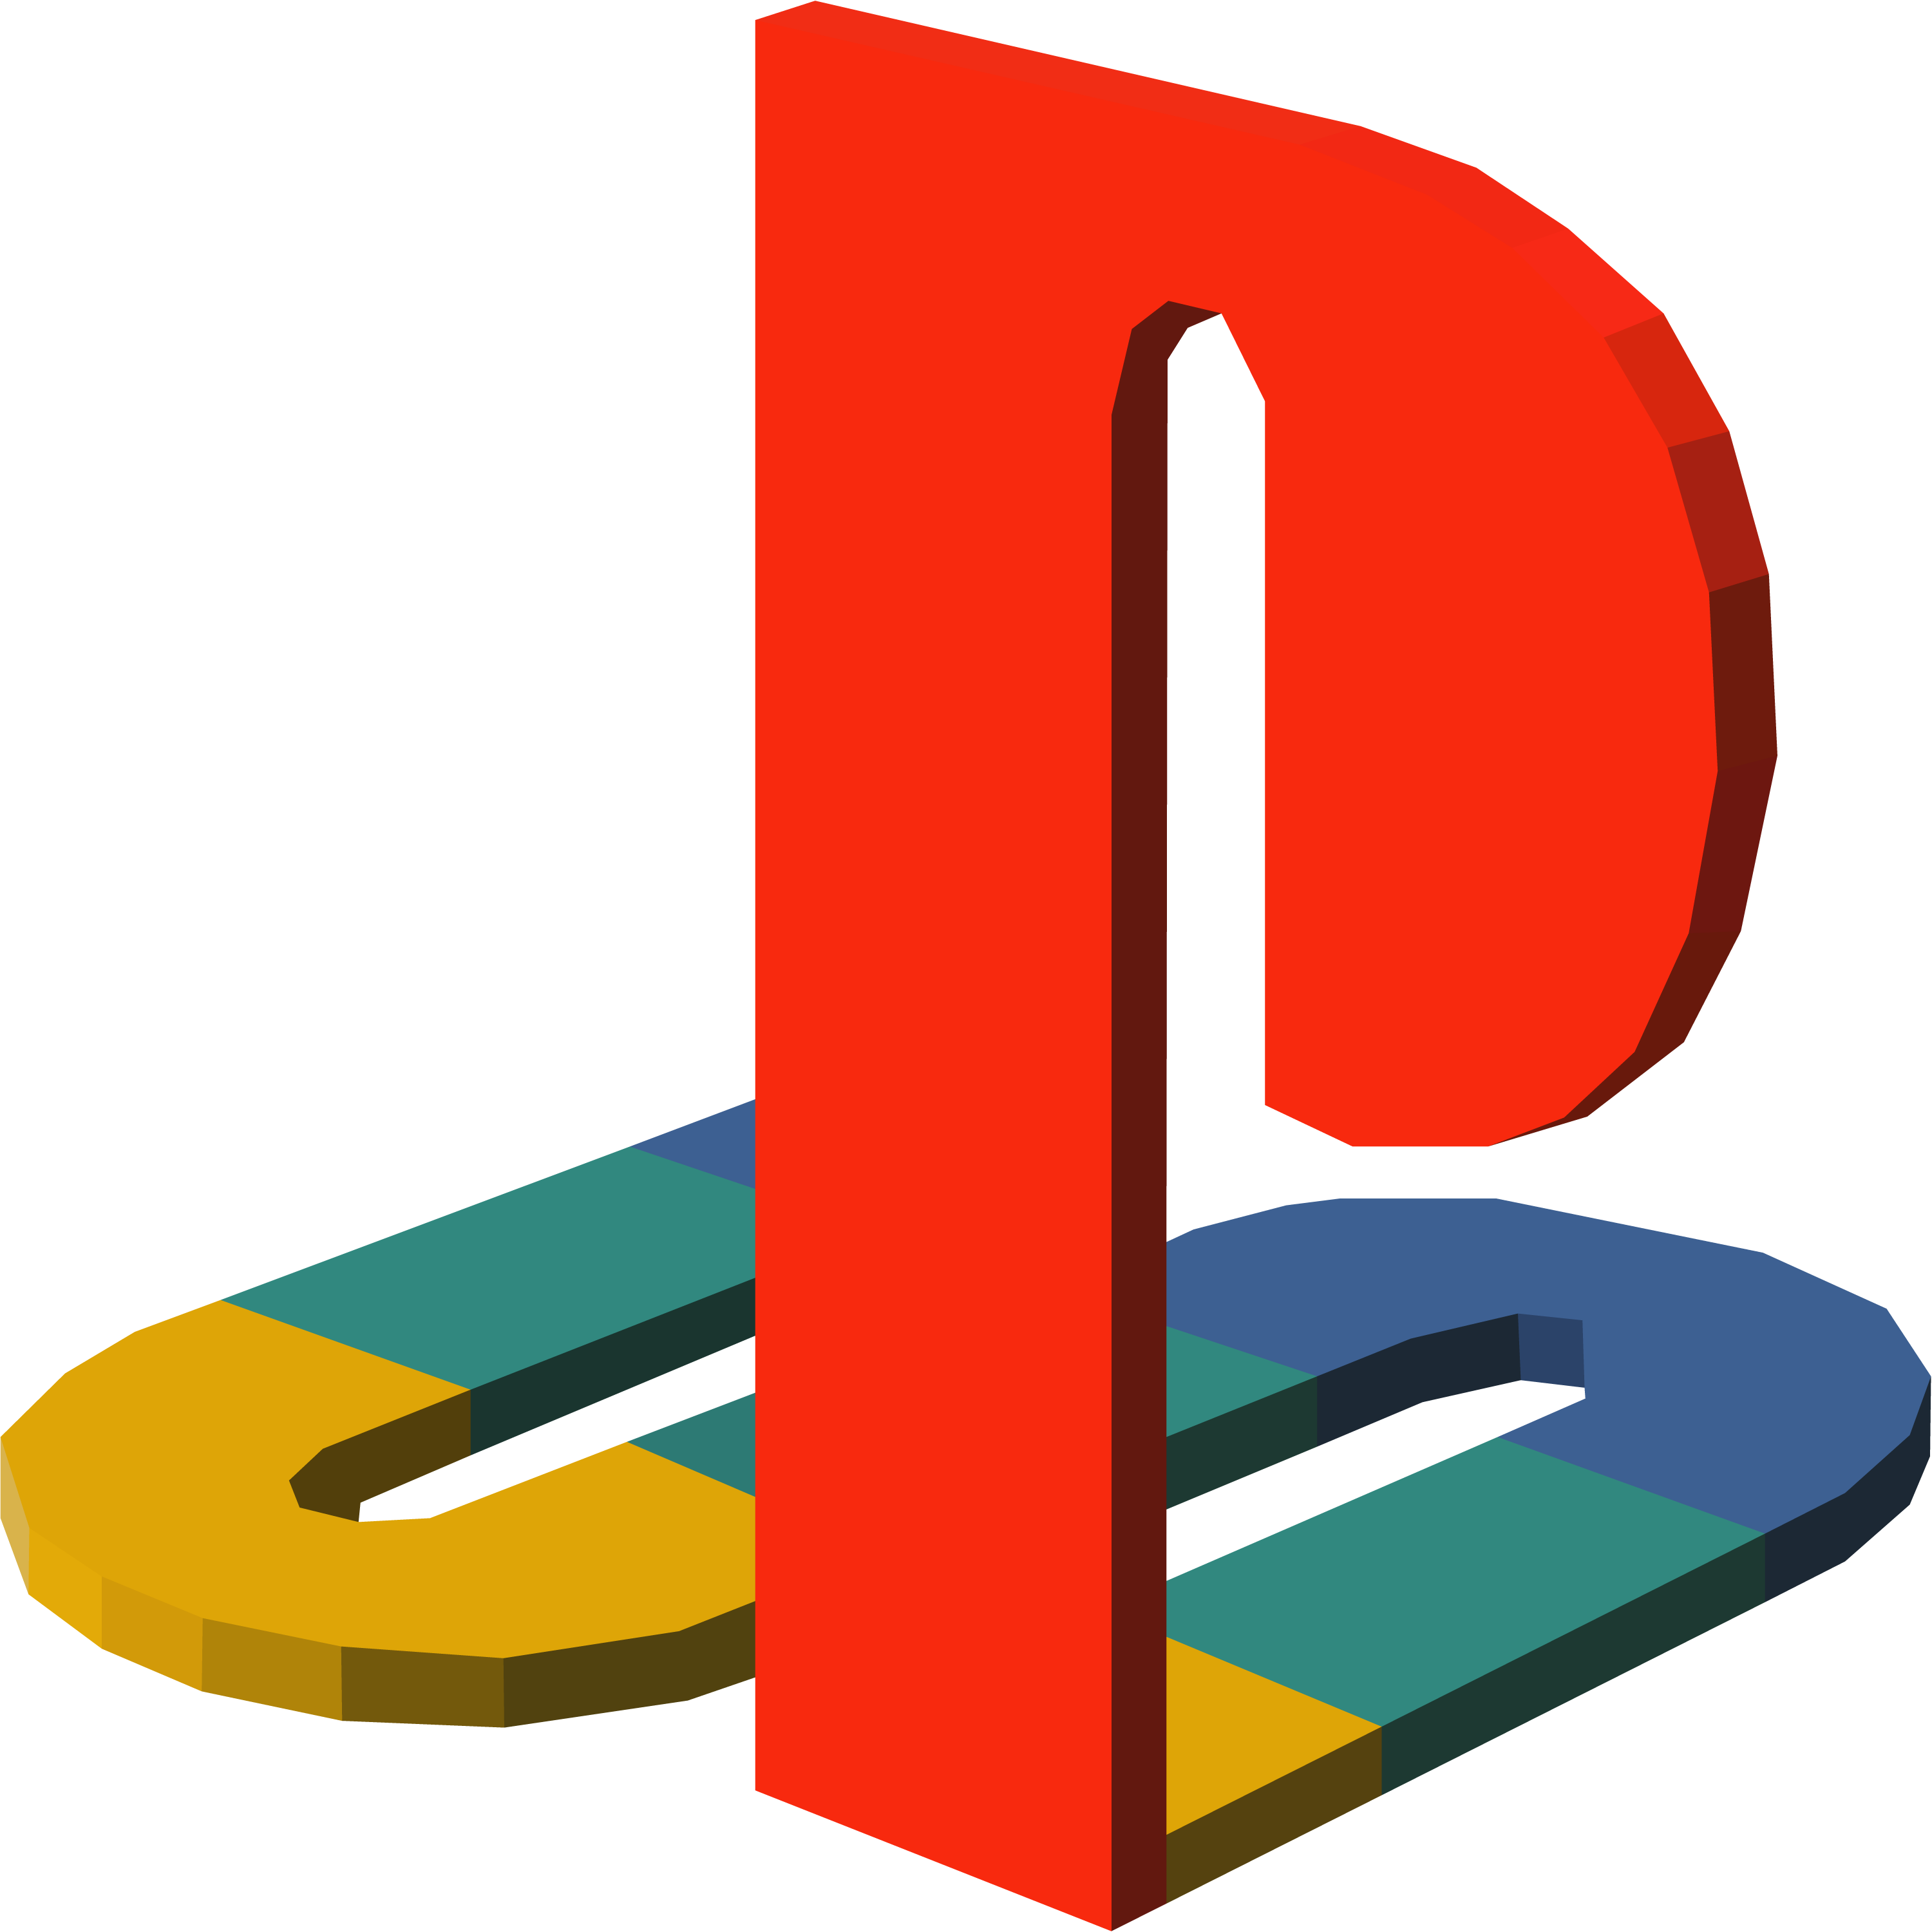 Play station png. Playstation transparent images all